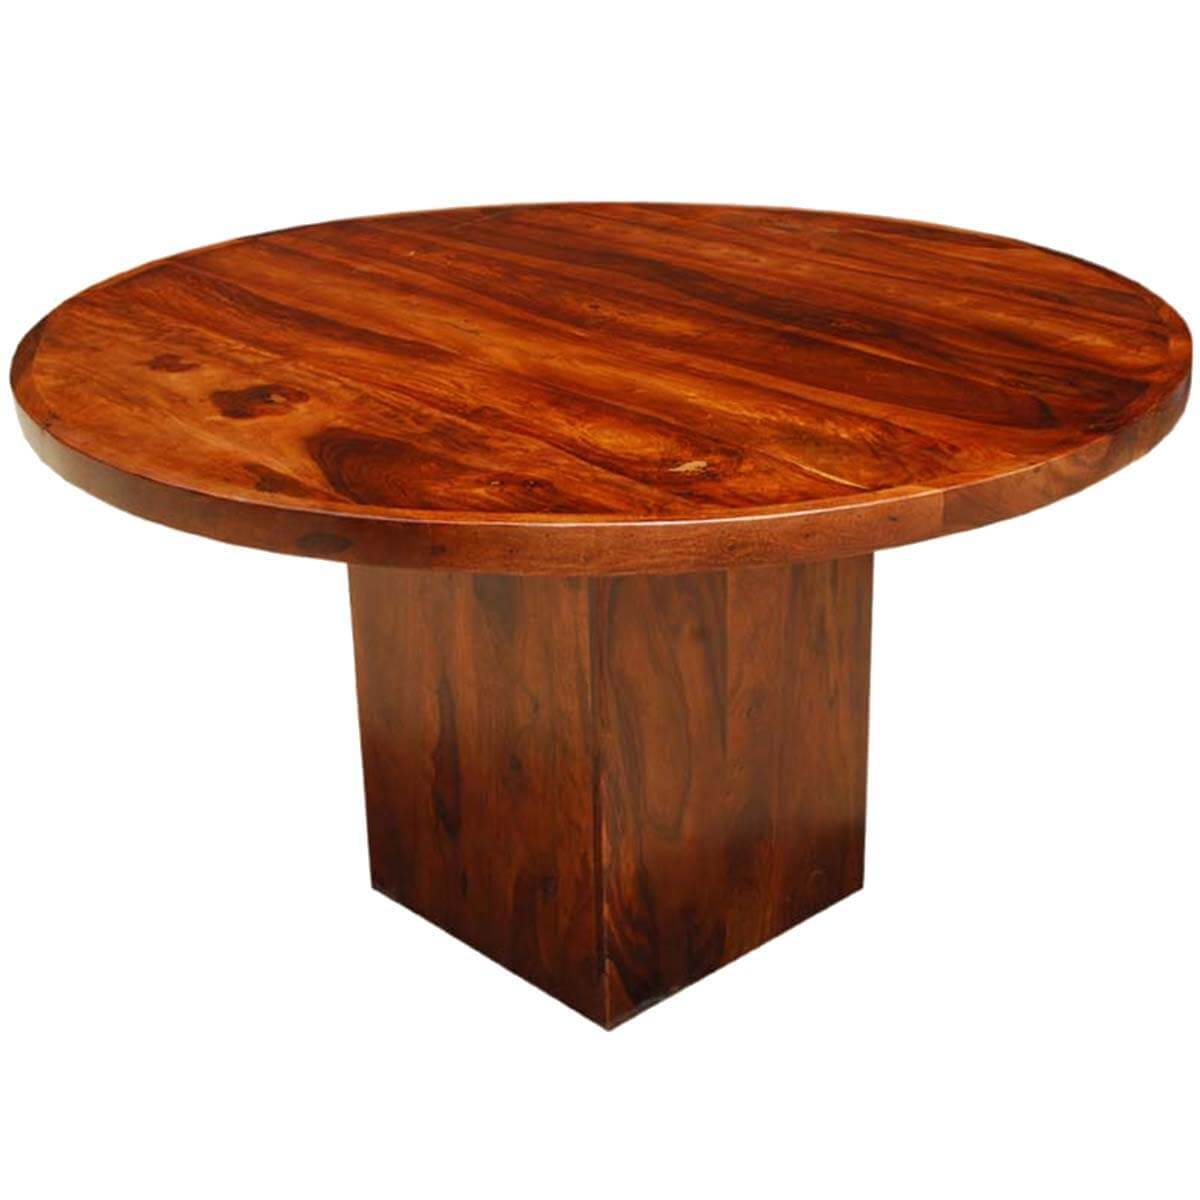 Amish Rustic Plank Top Dining Set Round Pedestal Solid: Solid Wood Rustic Round Dining Table W Square Pedestal